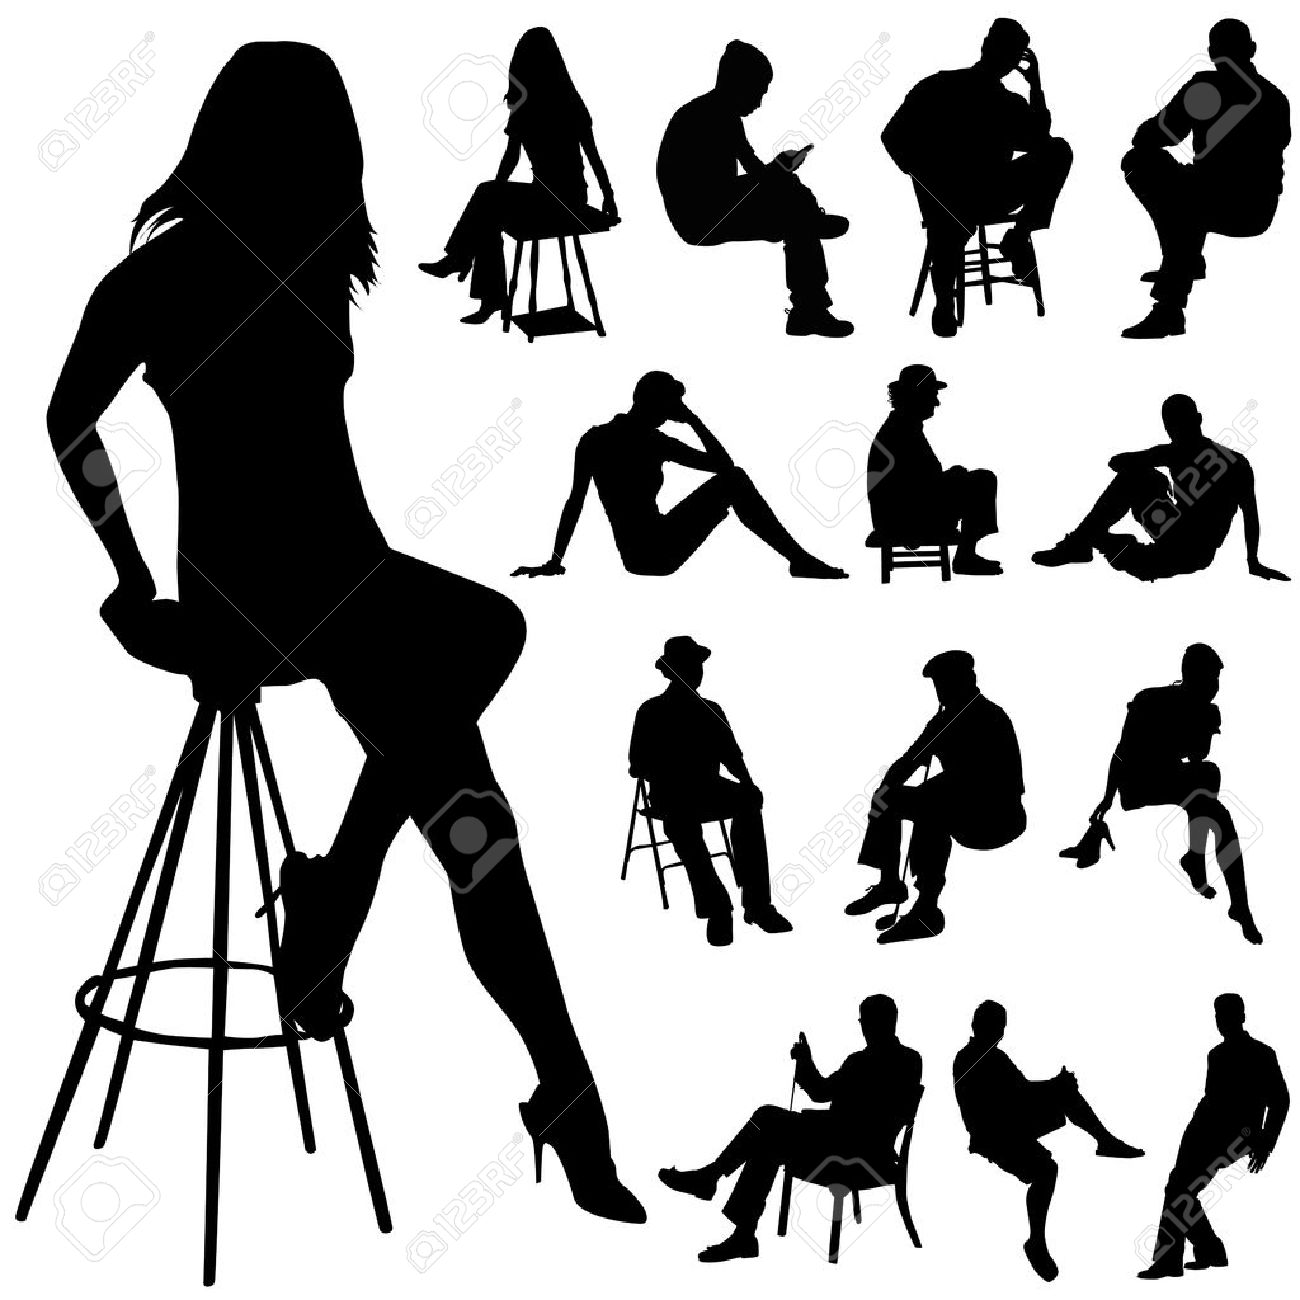 sitting people Stock Vector - 8333881